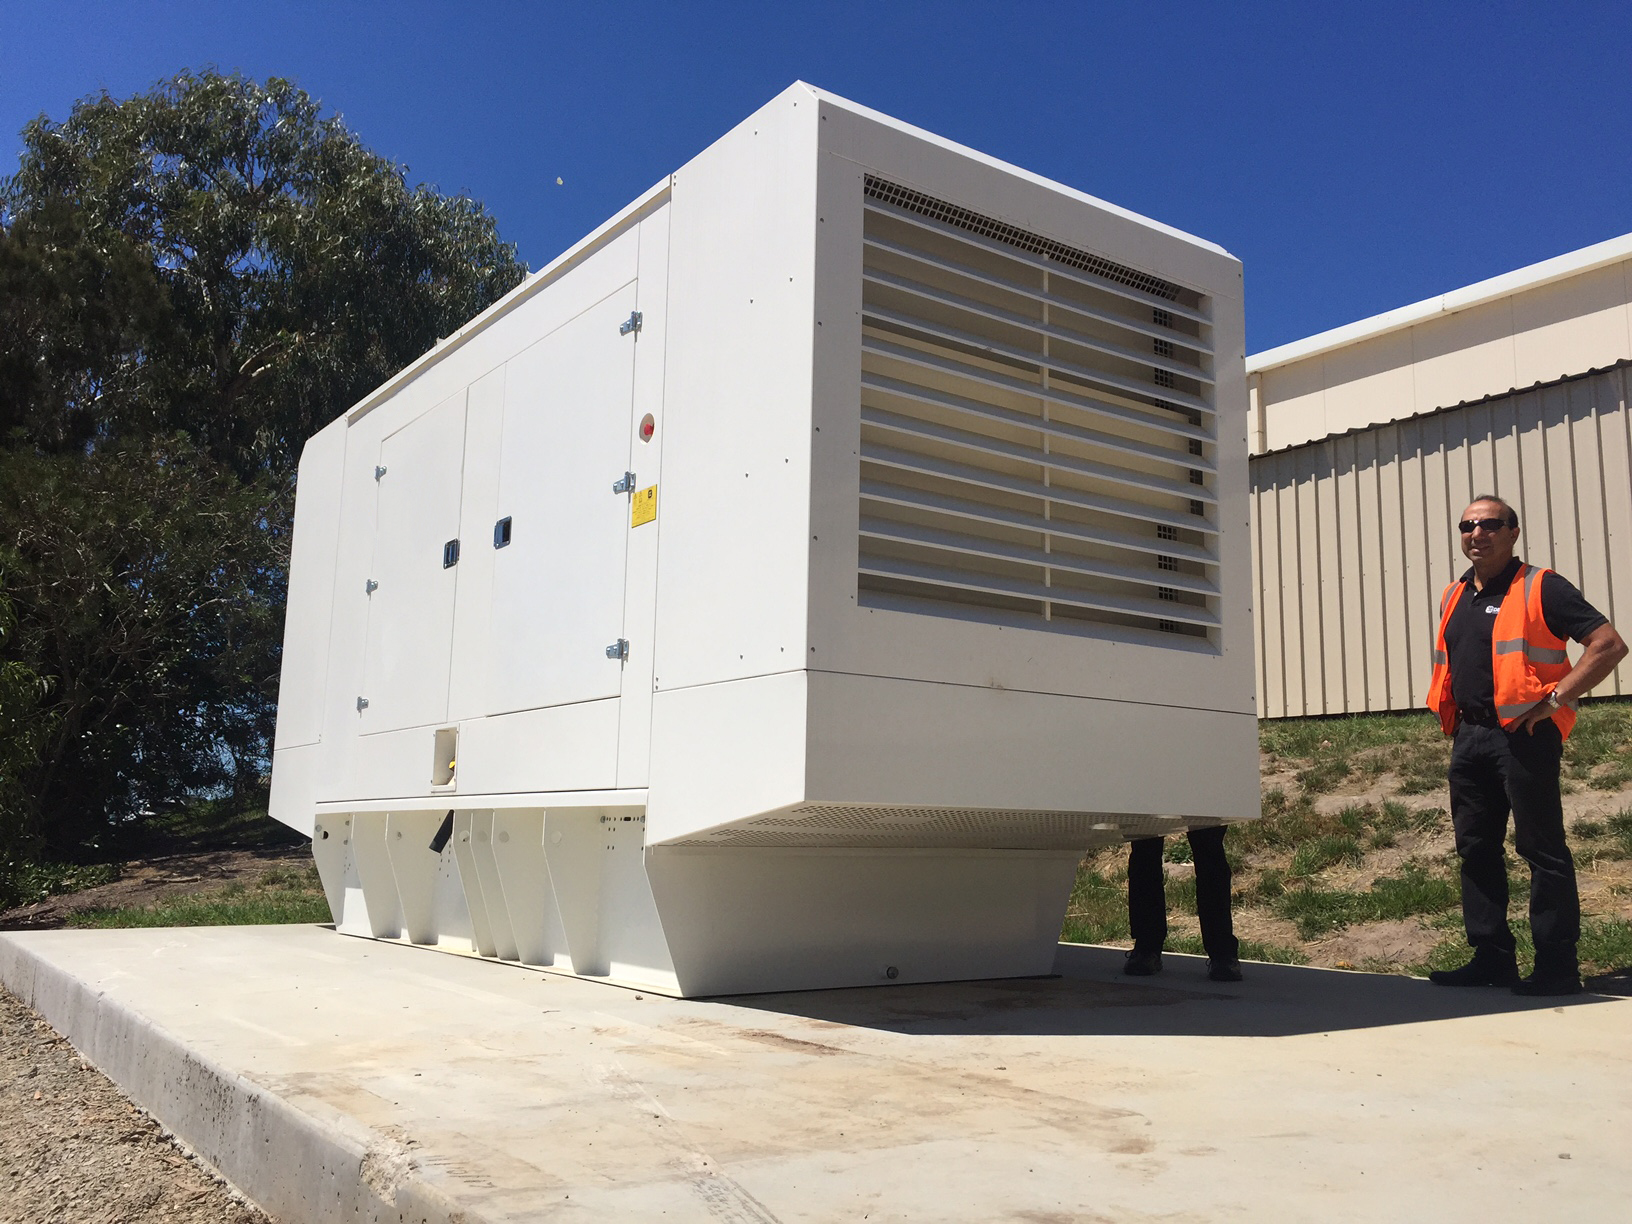 PERINGENERATORS: installation new 800 kW power generator in